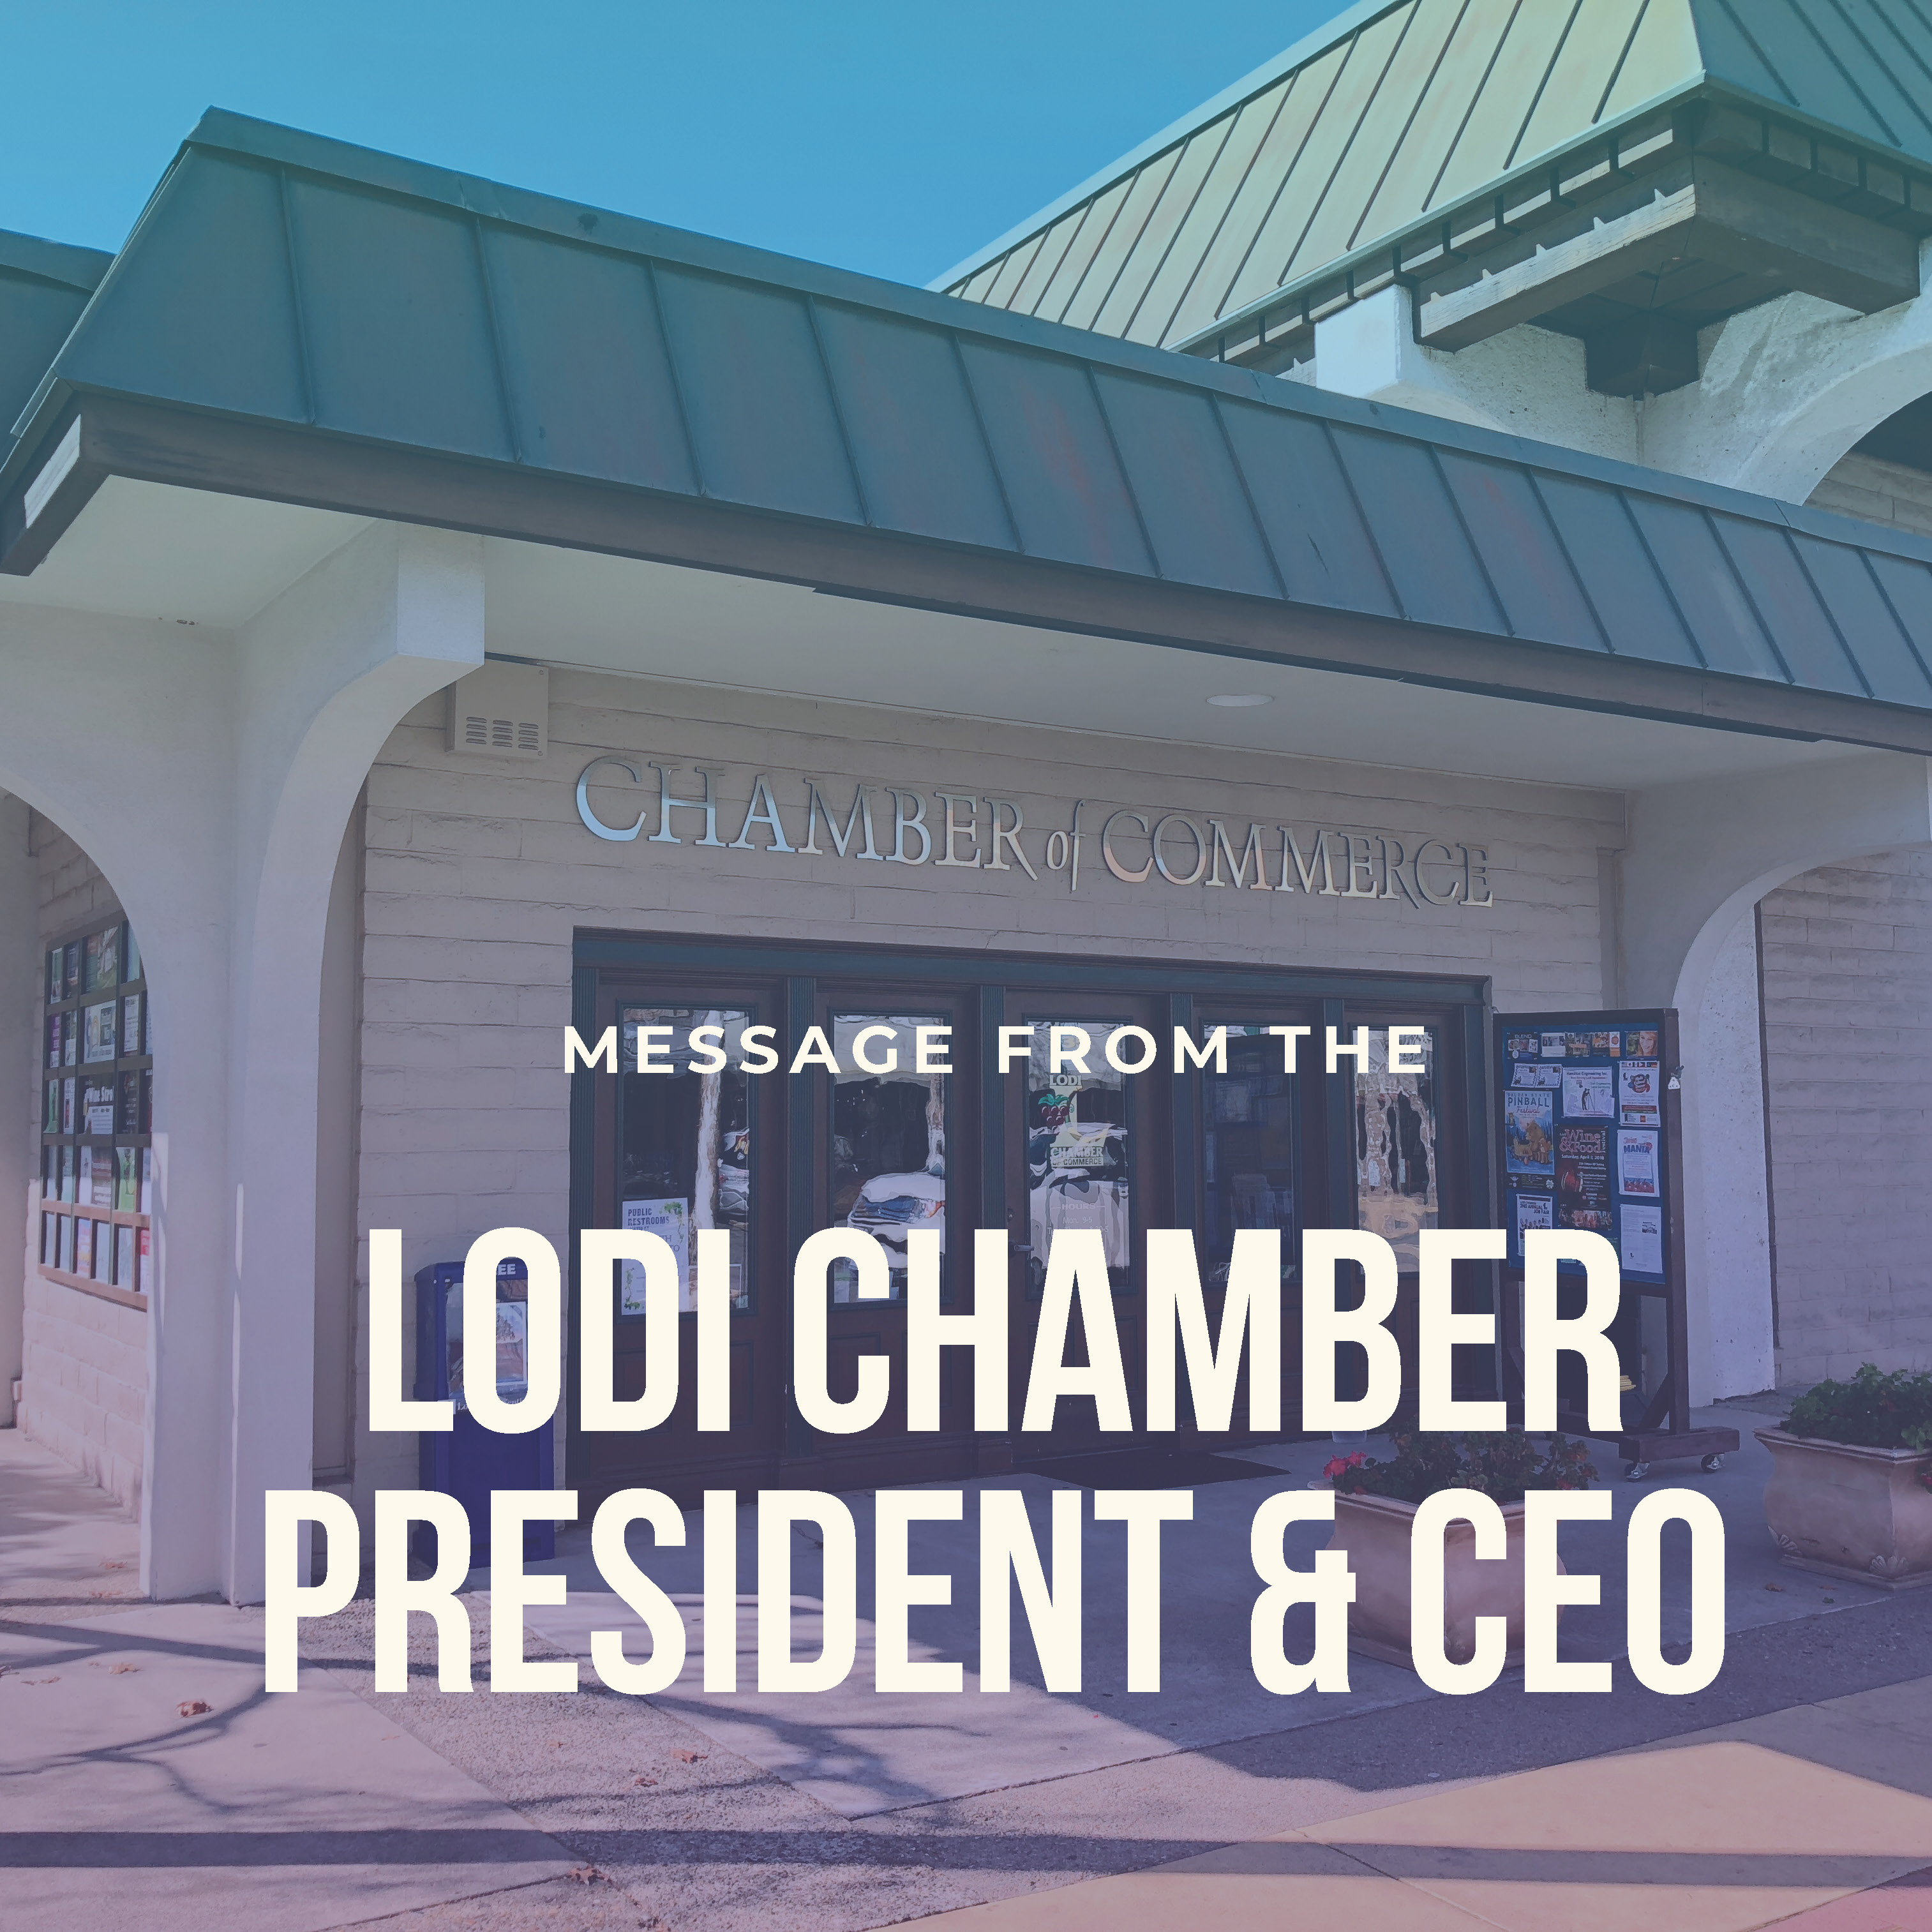 Image for Message from the President & CEO